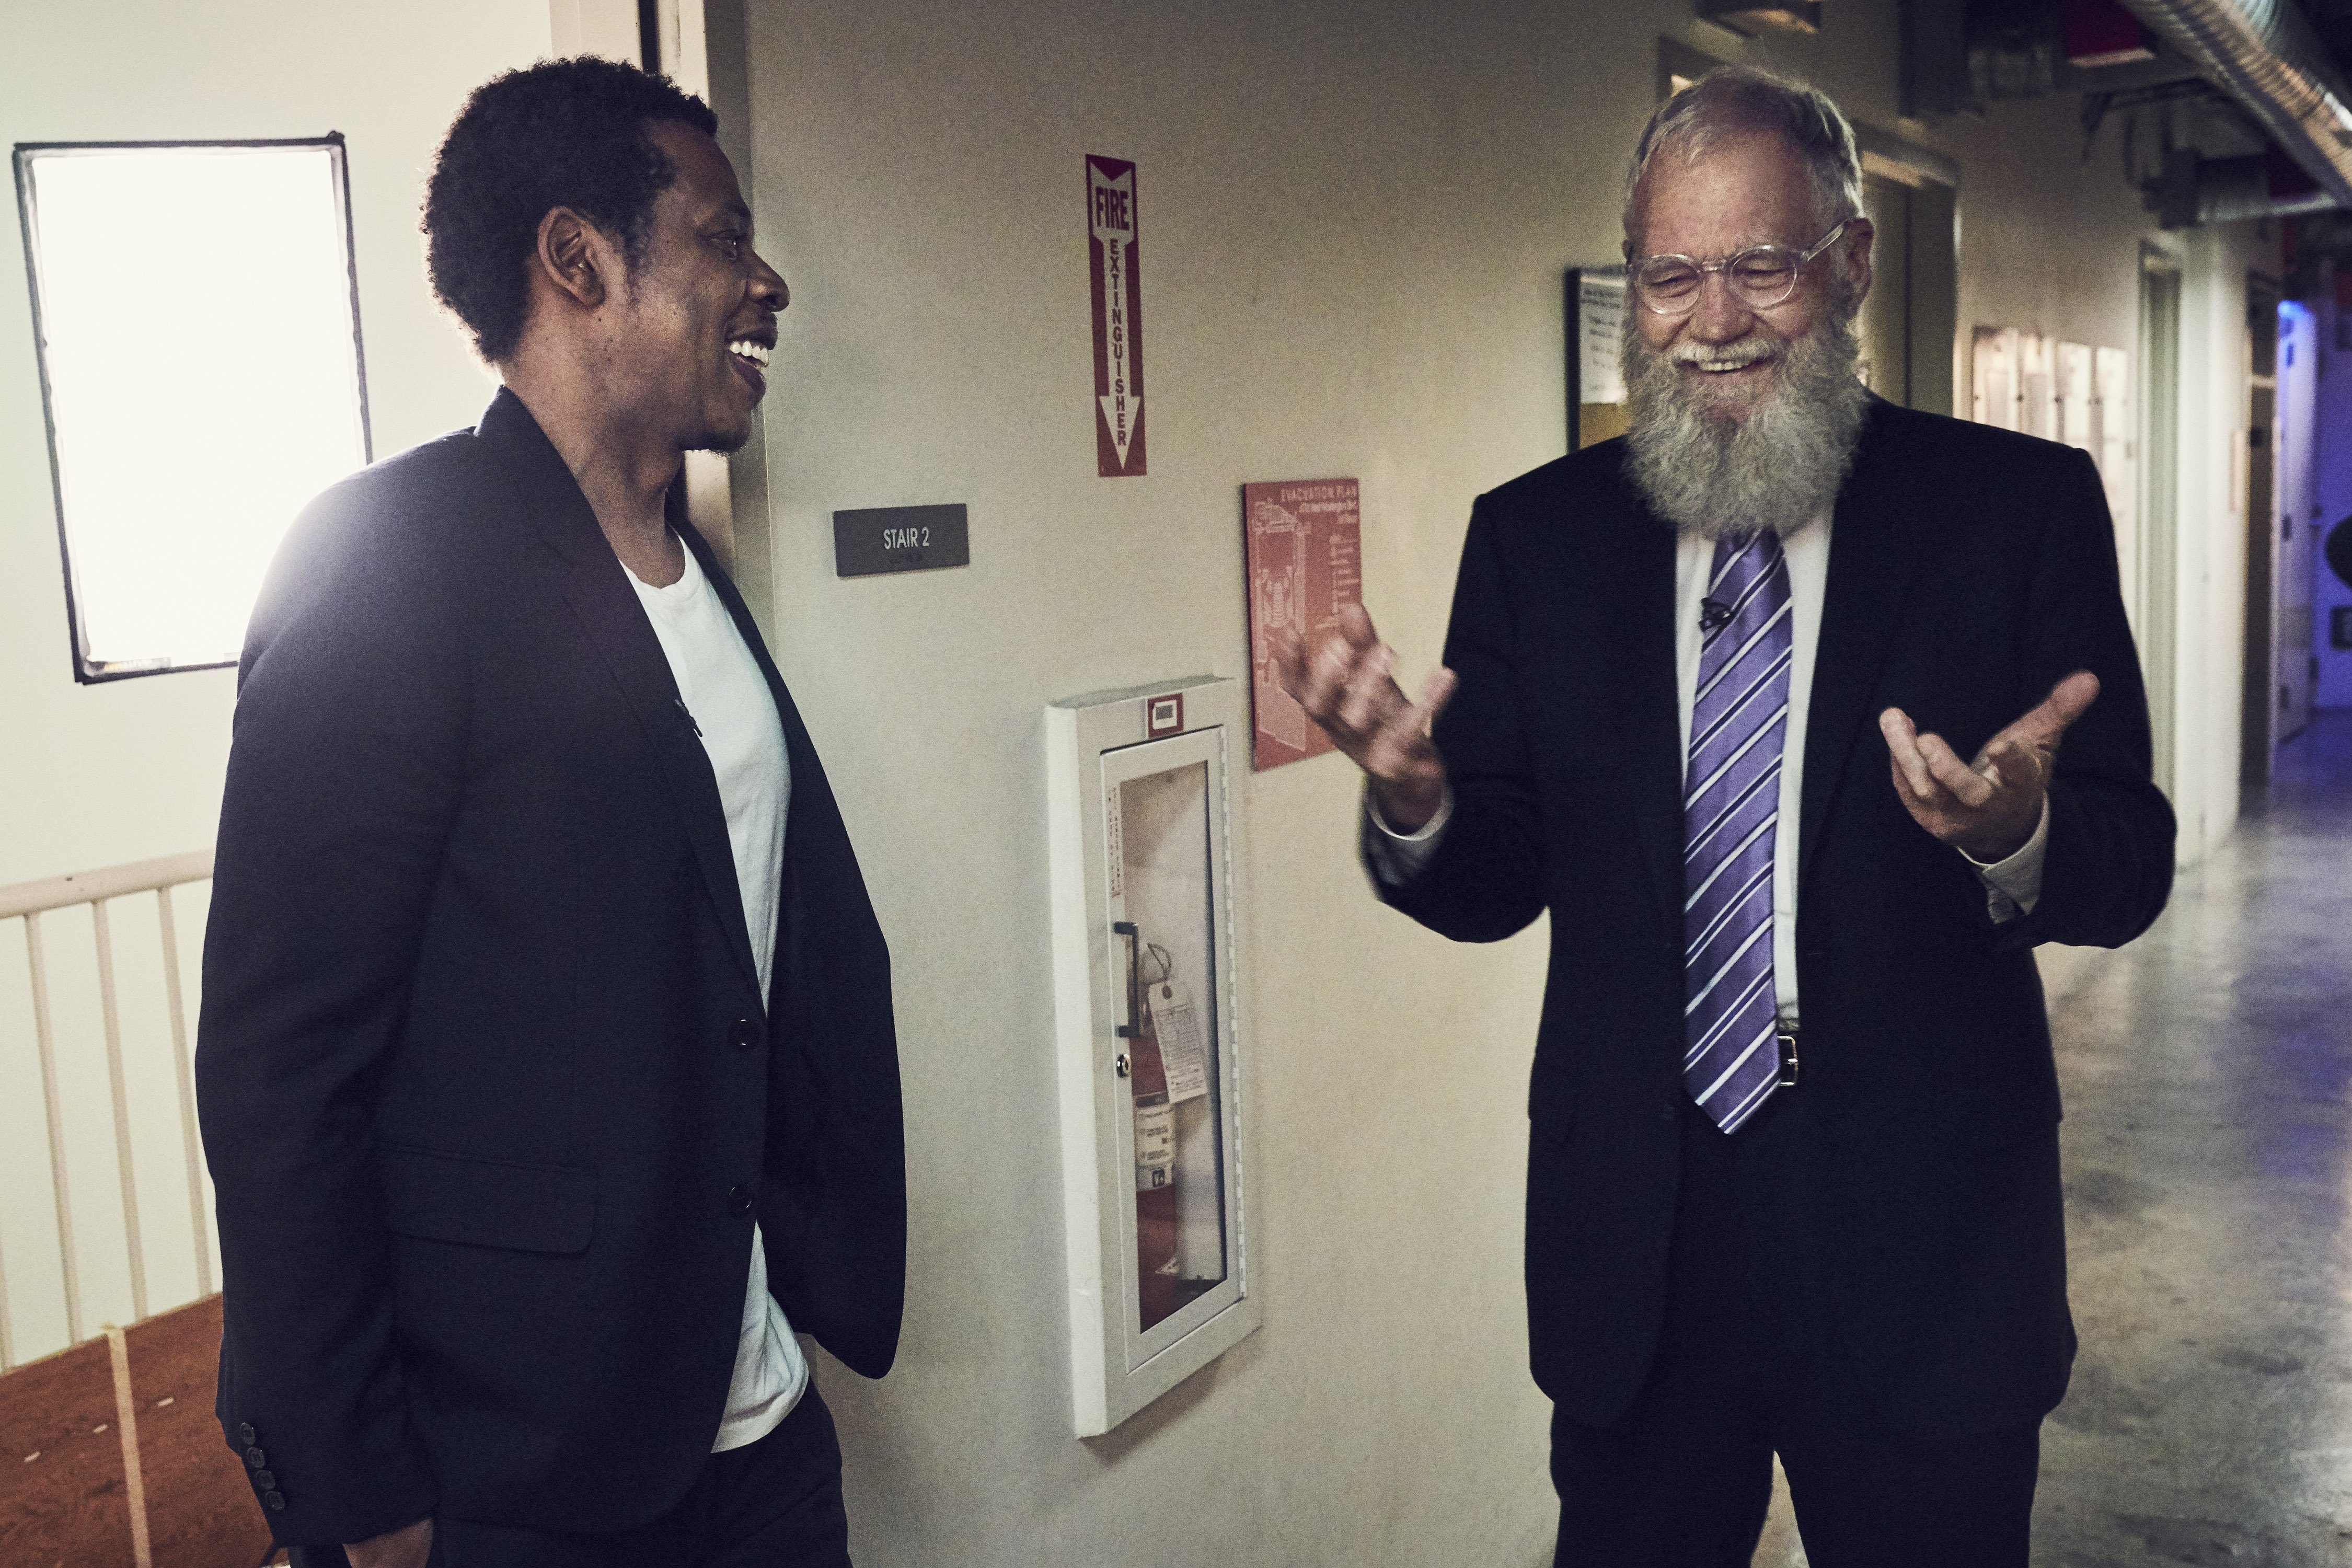 Get a First Look at Jay-Z Breaking Down the Game for David Letterman